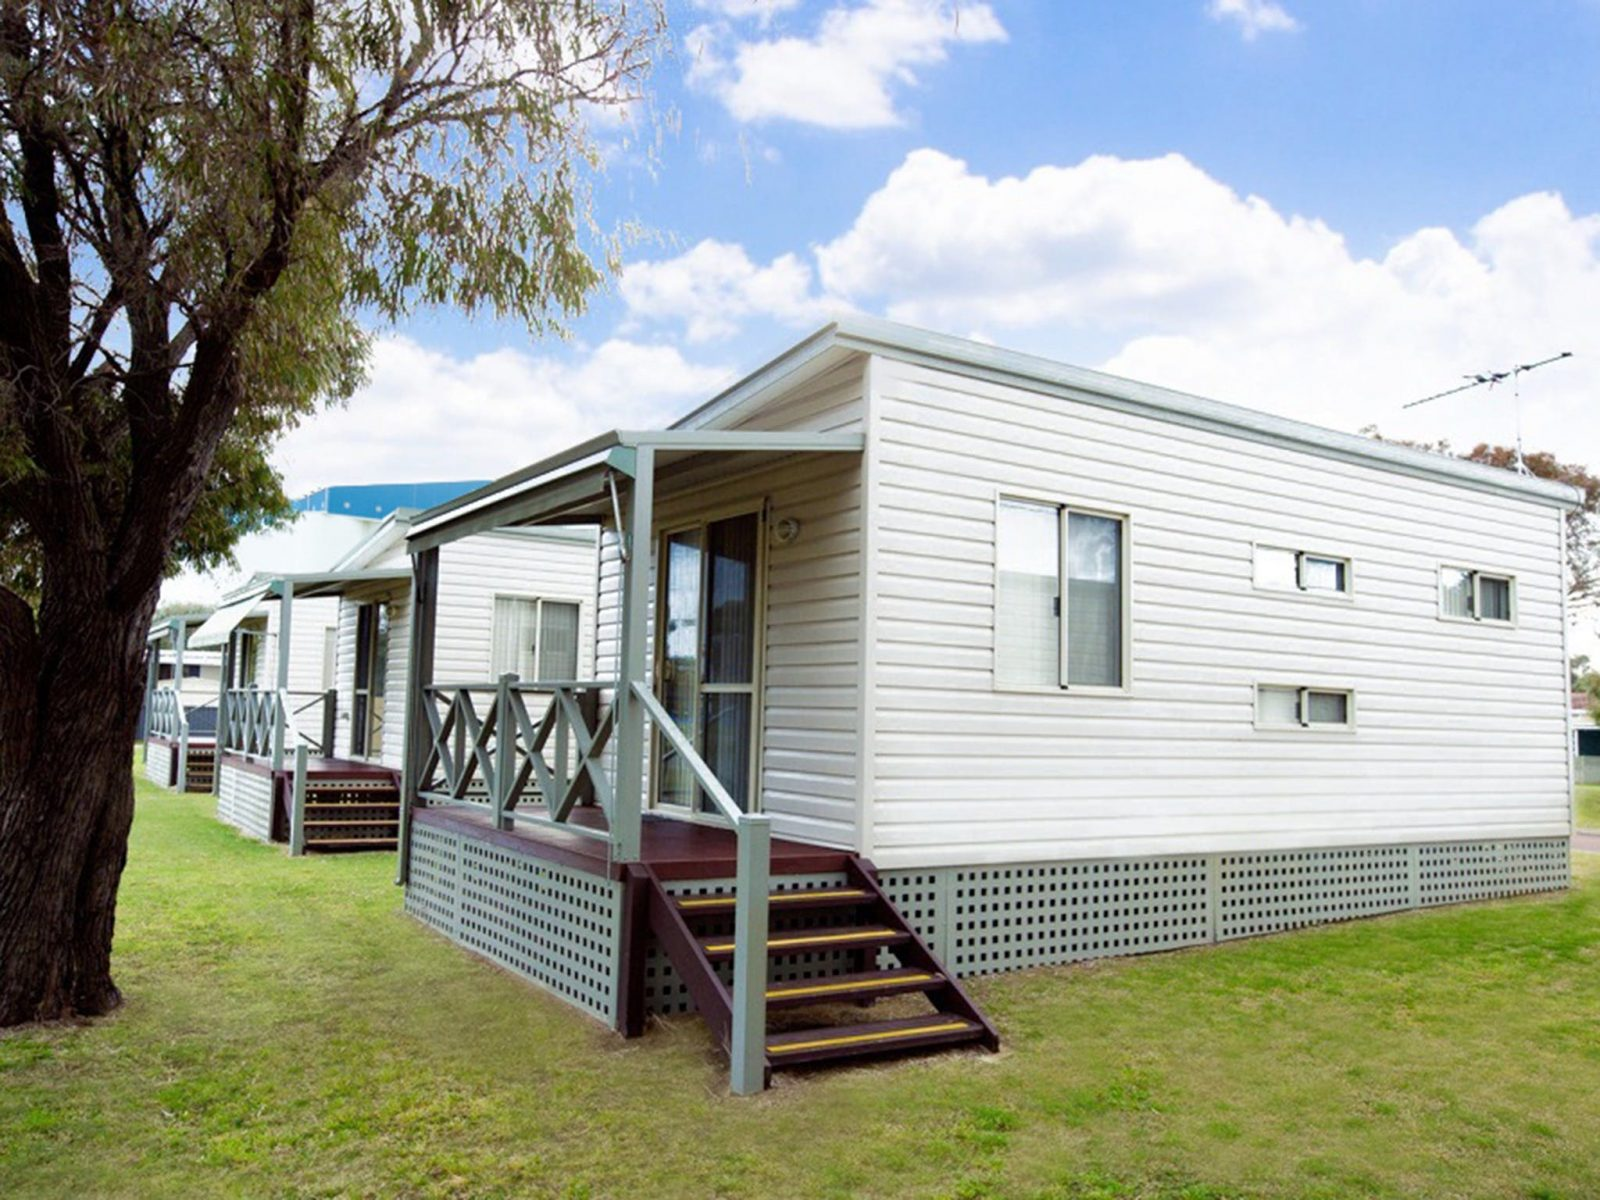 Cee and See Caravan Park, East Rockingham, Western Australia